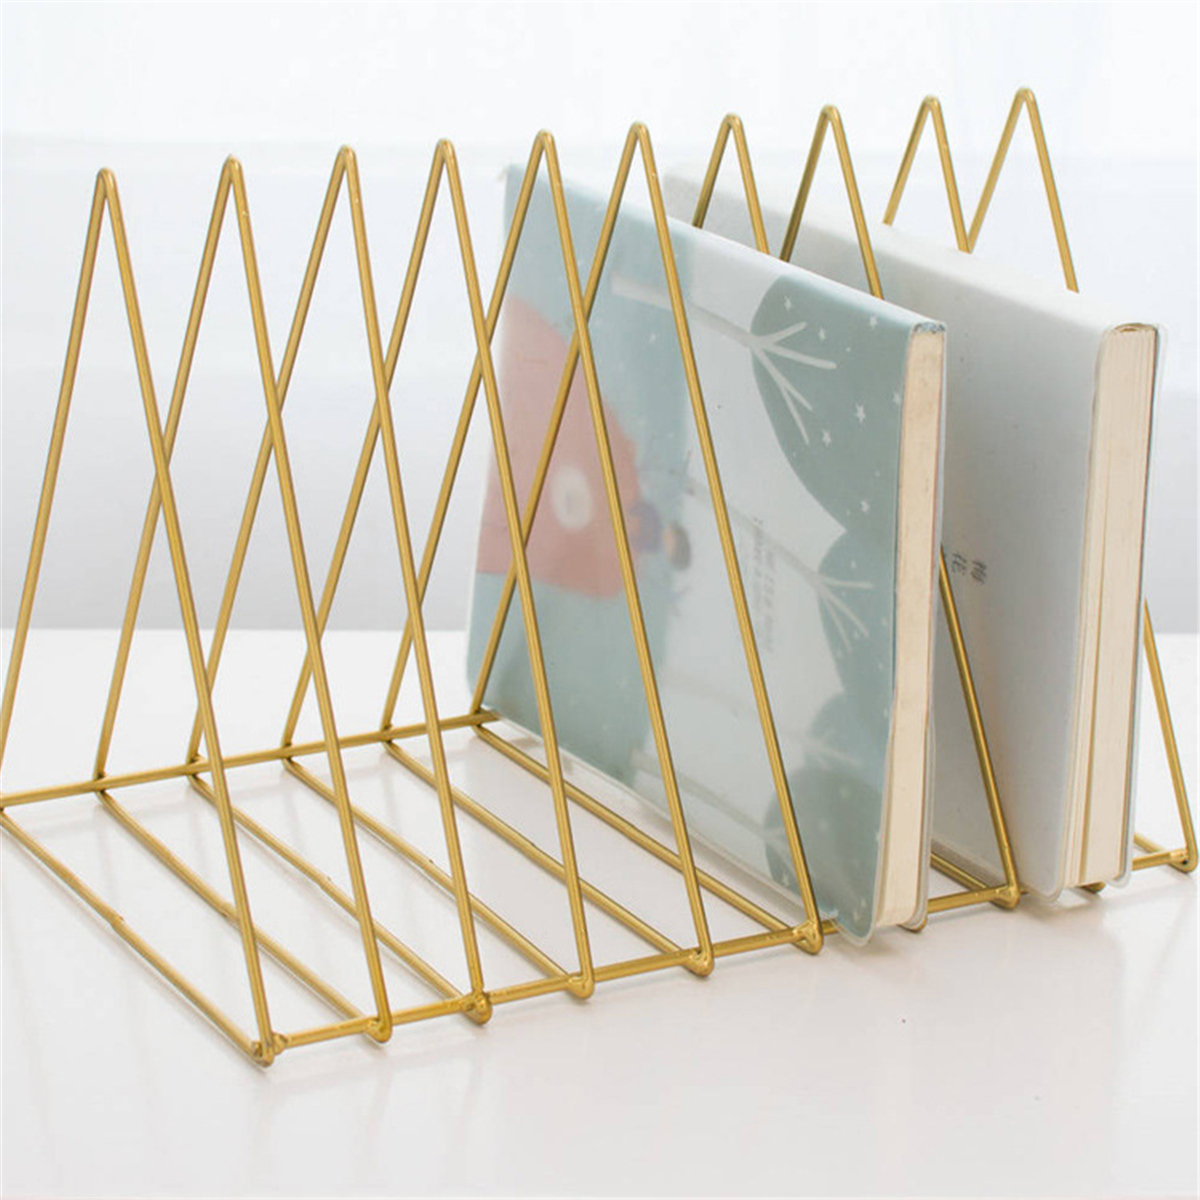 Metal Triangle Iron Art Desktop Bookshelf Letter Magazine Rack Holder Home Office Storage